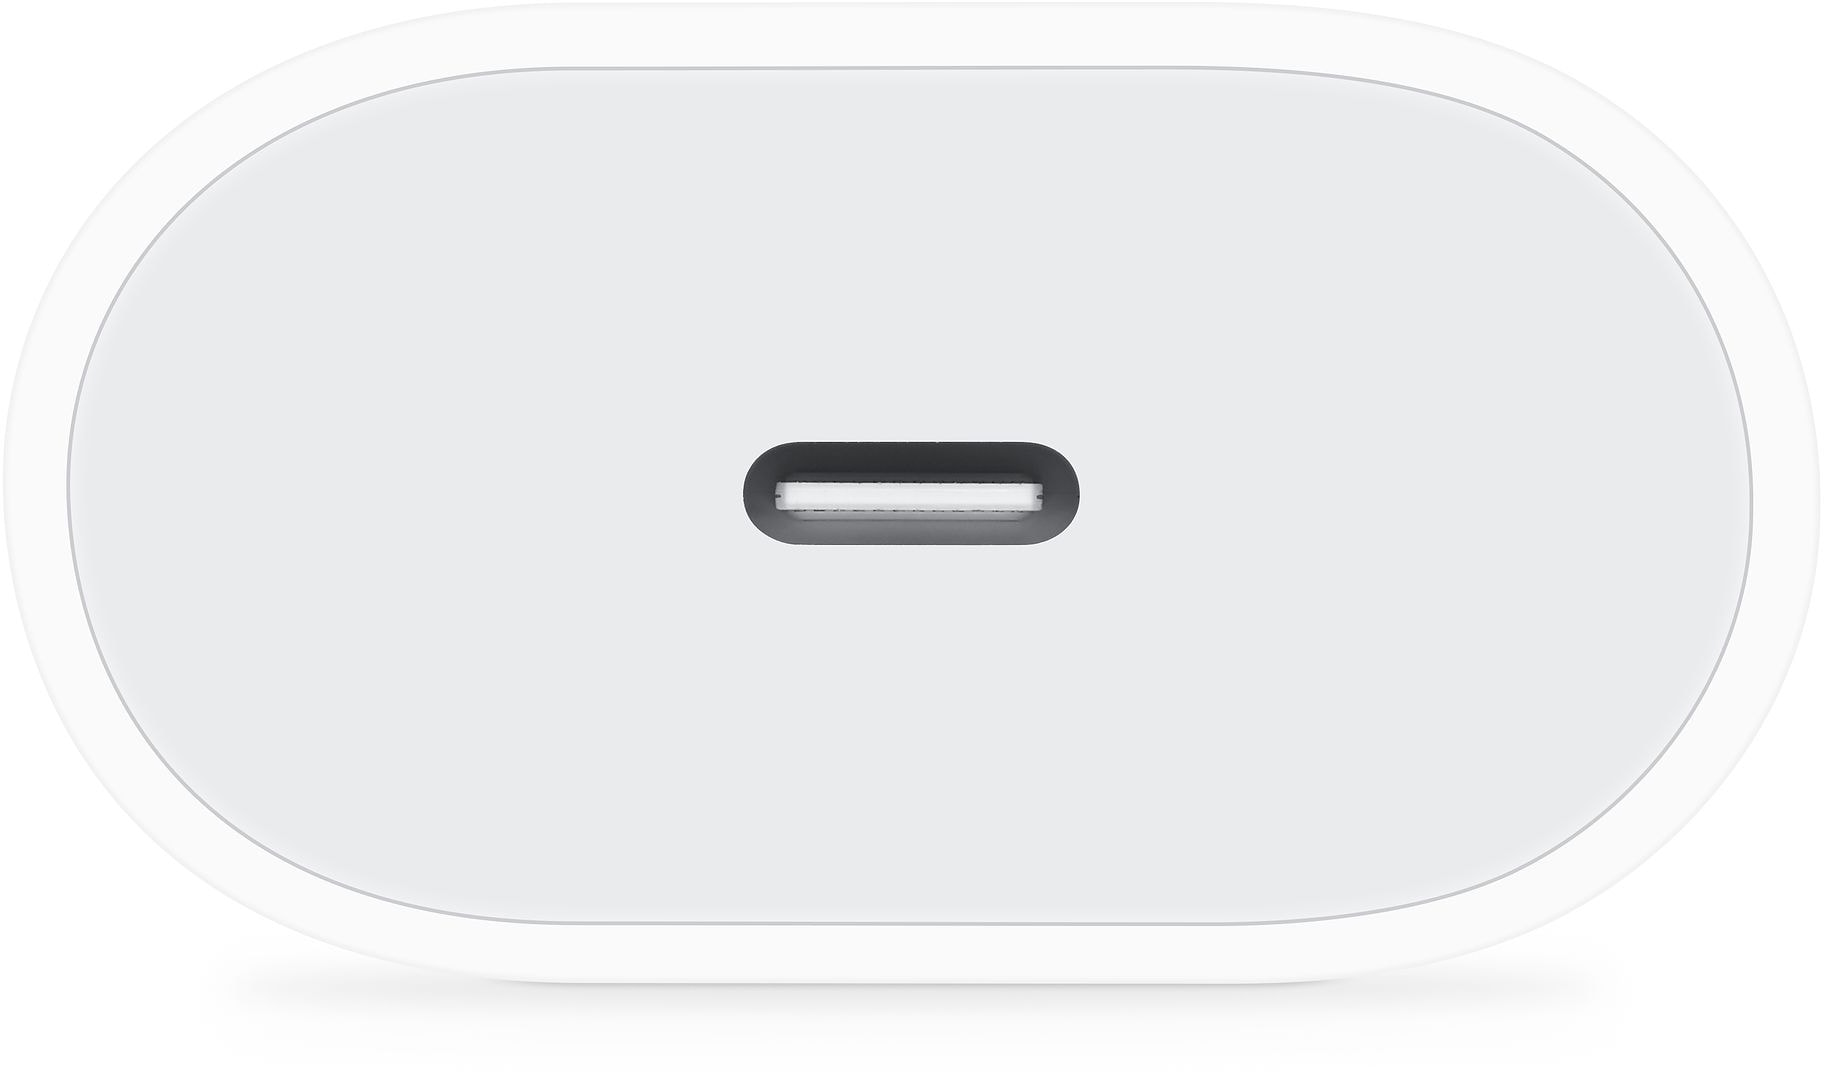 Carregador USB-C de 18W da Apple